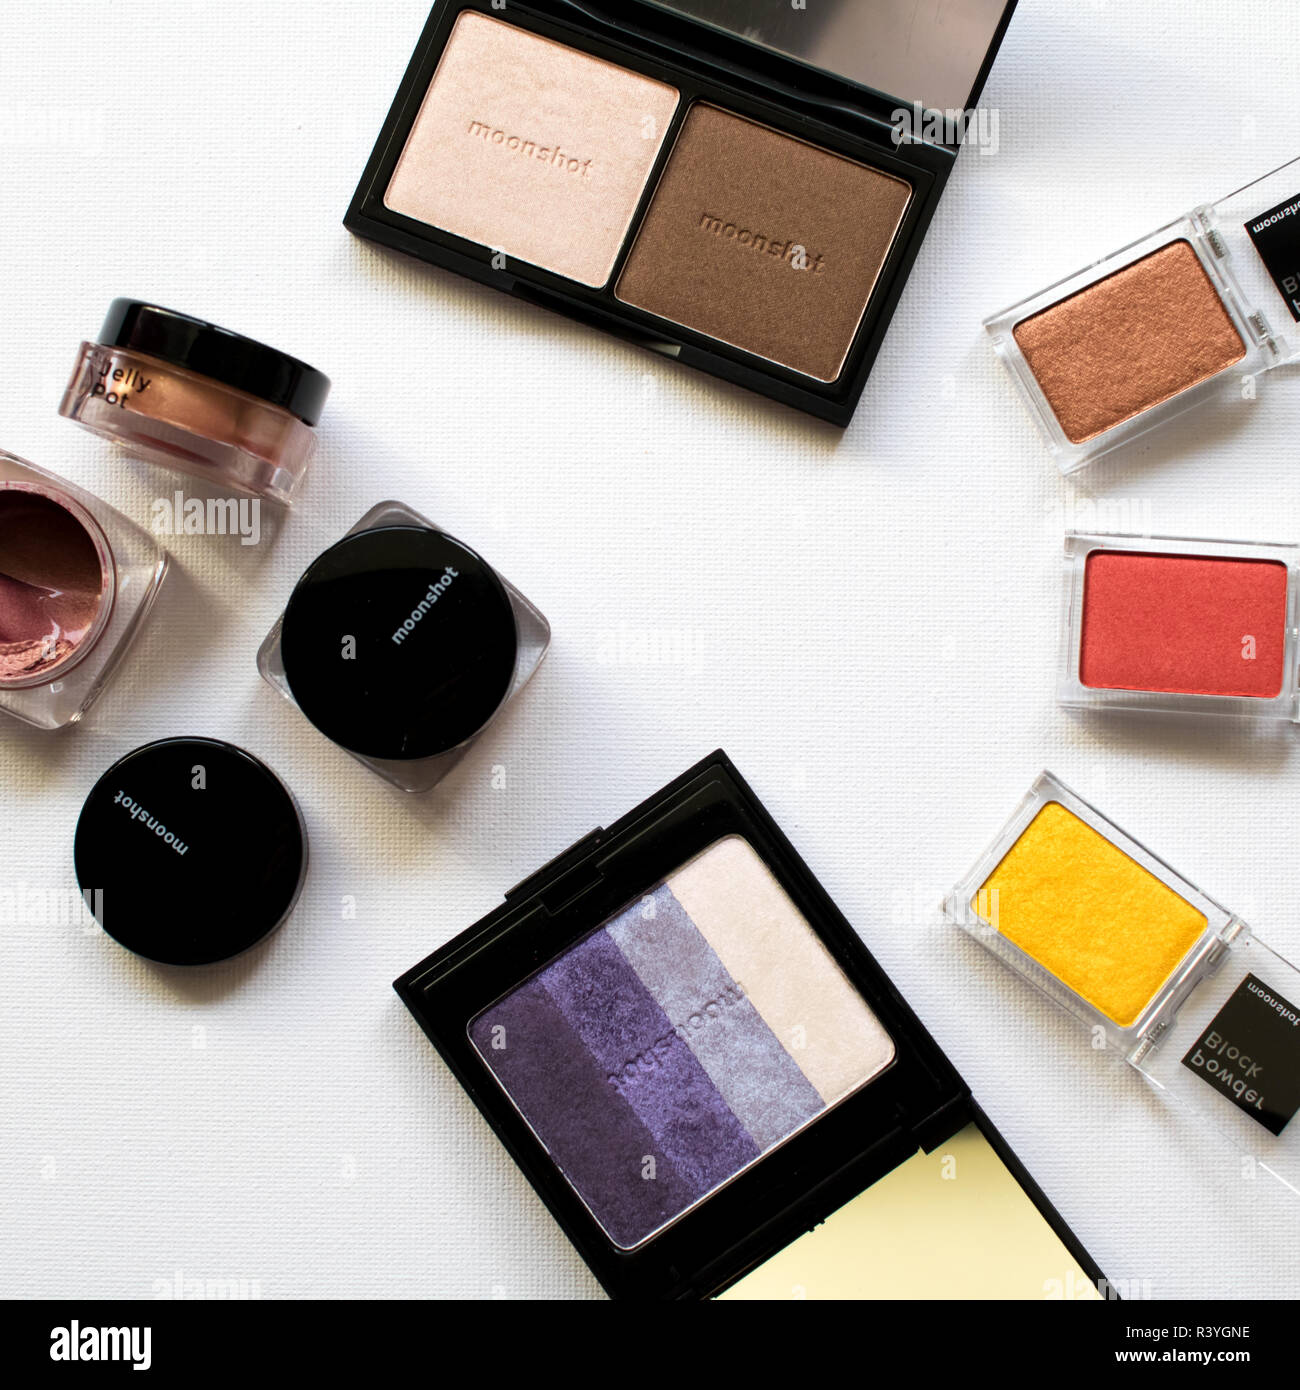 makeup palette purple with bronzer and highlighter and bright eyeshadows red and yellow with gel cream eyeshadows from moonshine. Kbeauty product - Stock Image